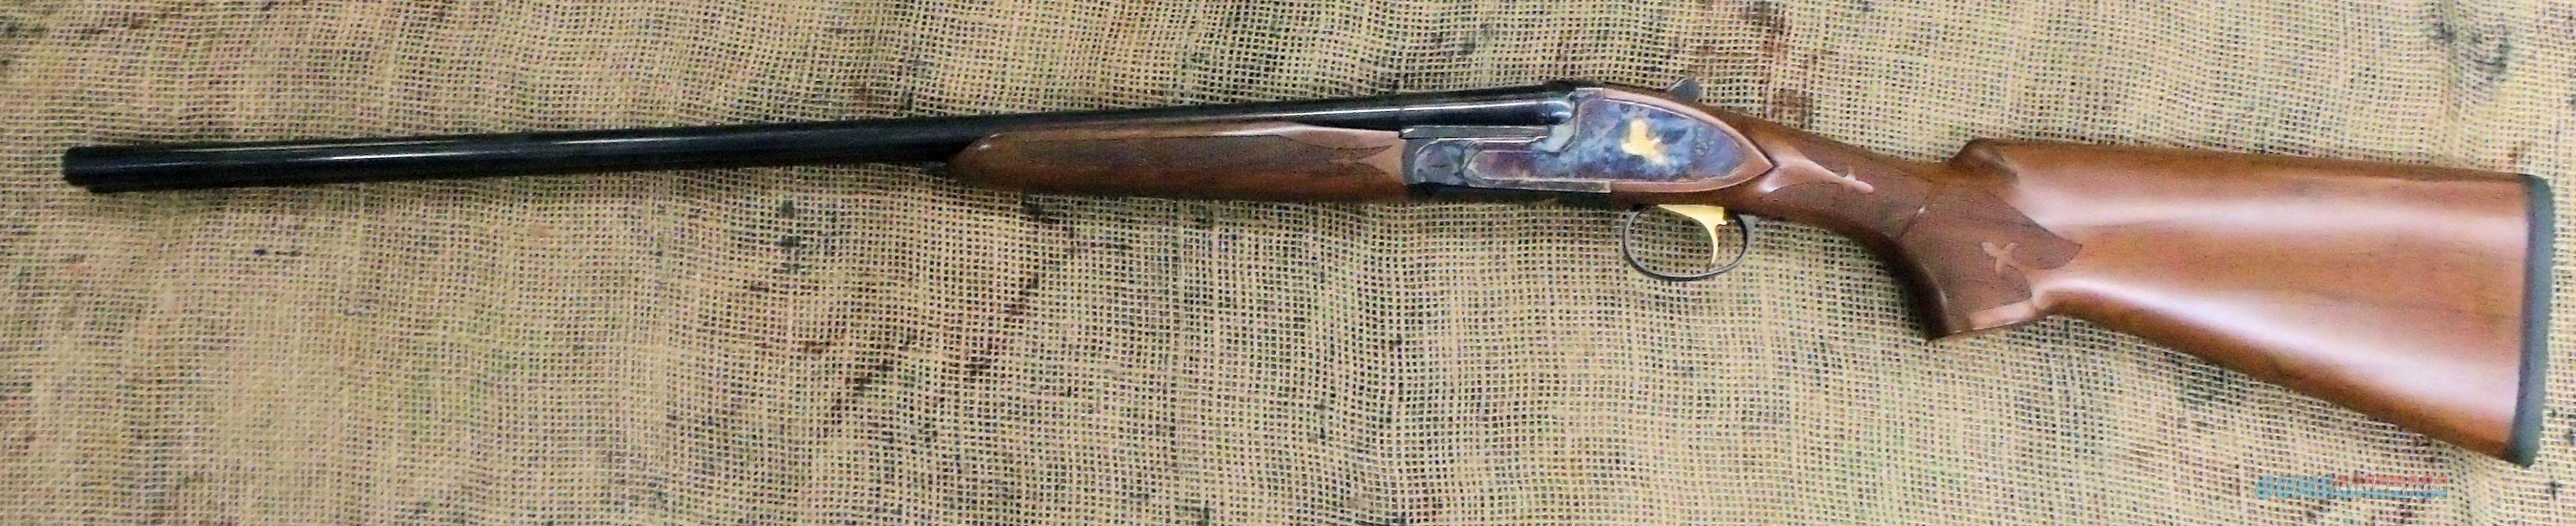 L. C. Smith by Marlin SxS 28Ga. Shotgun  Guns > Shotguns > L.C. Smith Shotguns